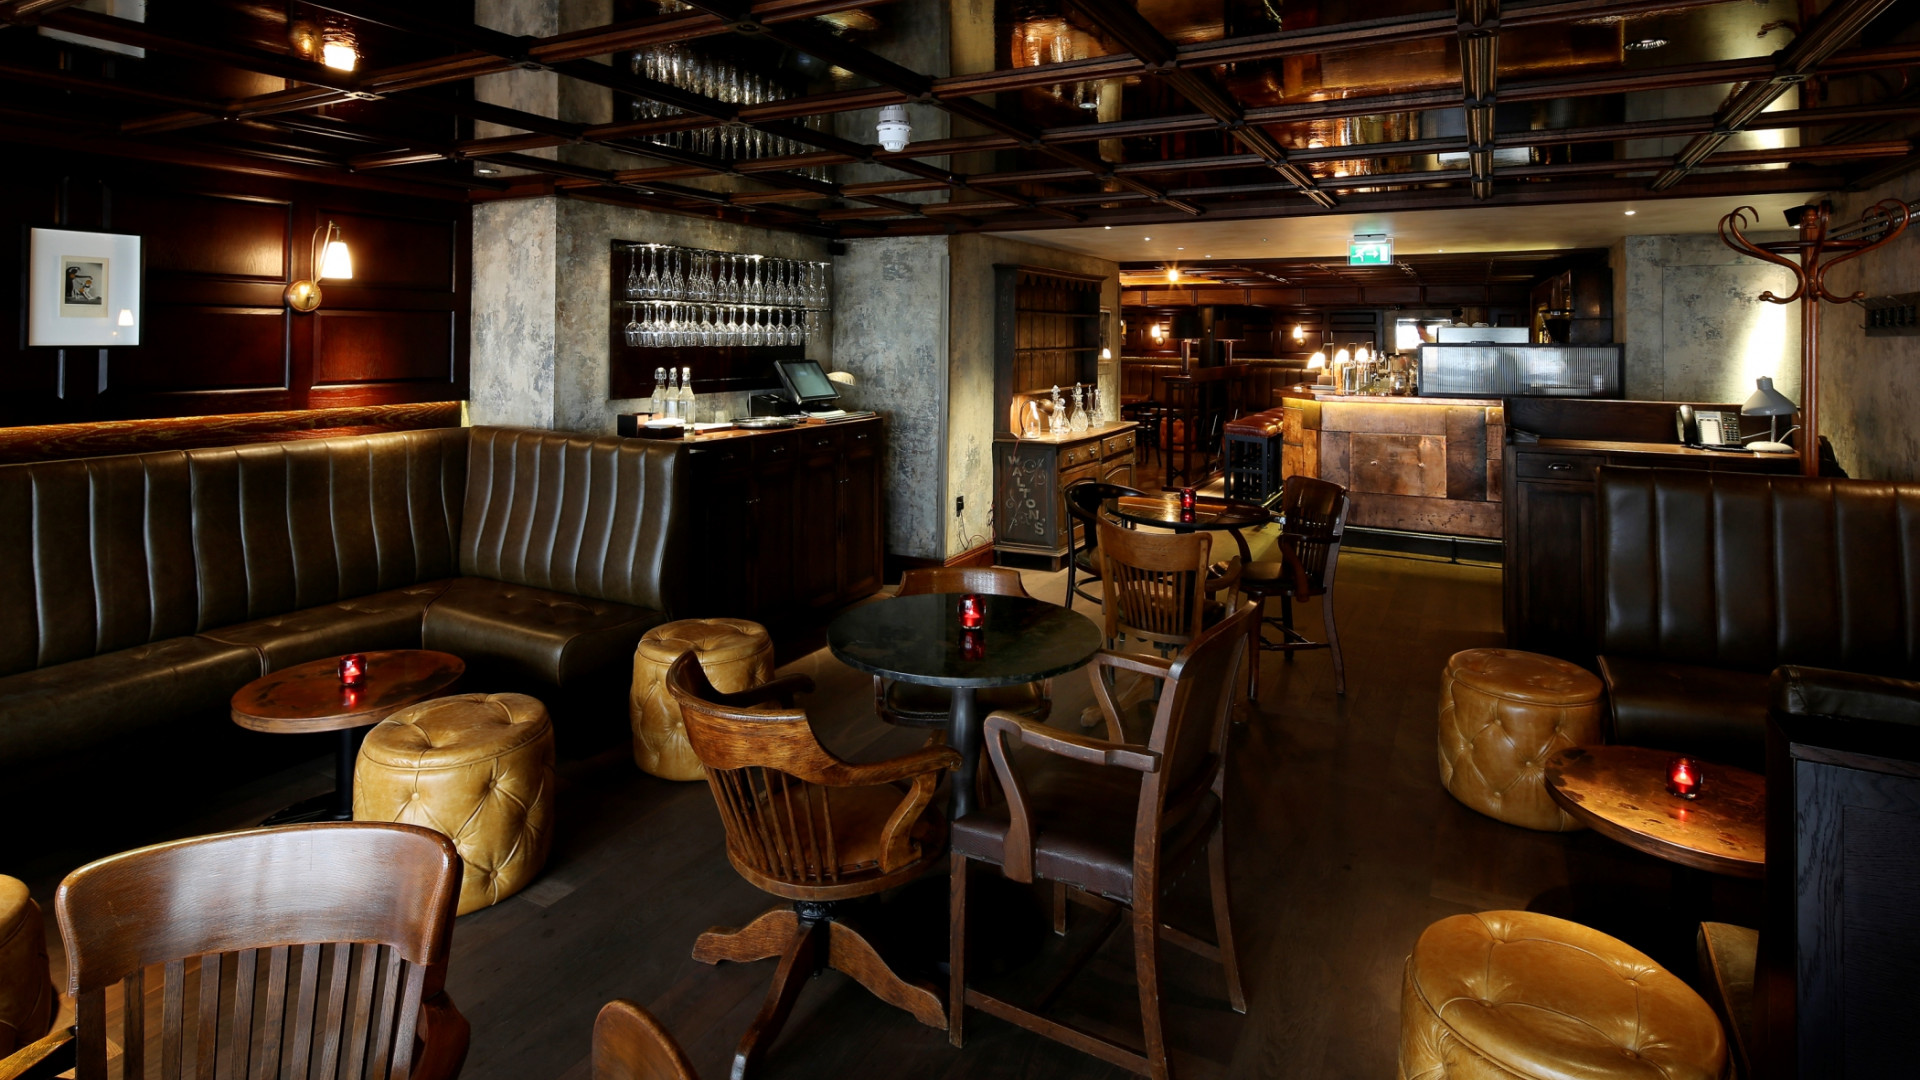 The interiors at Social Eating House's Blind Pig bar in Soho